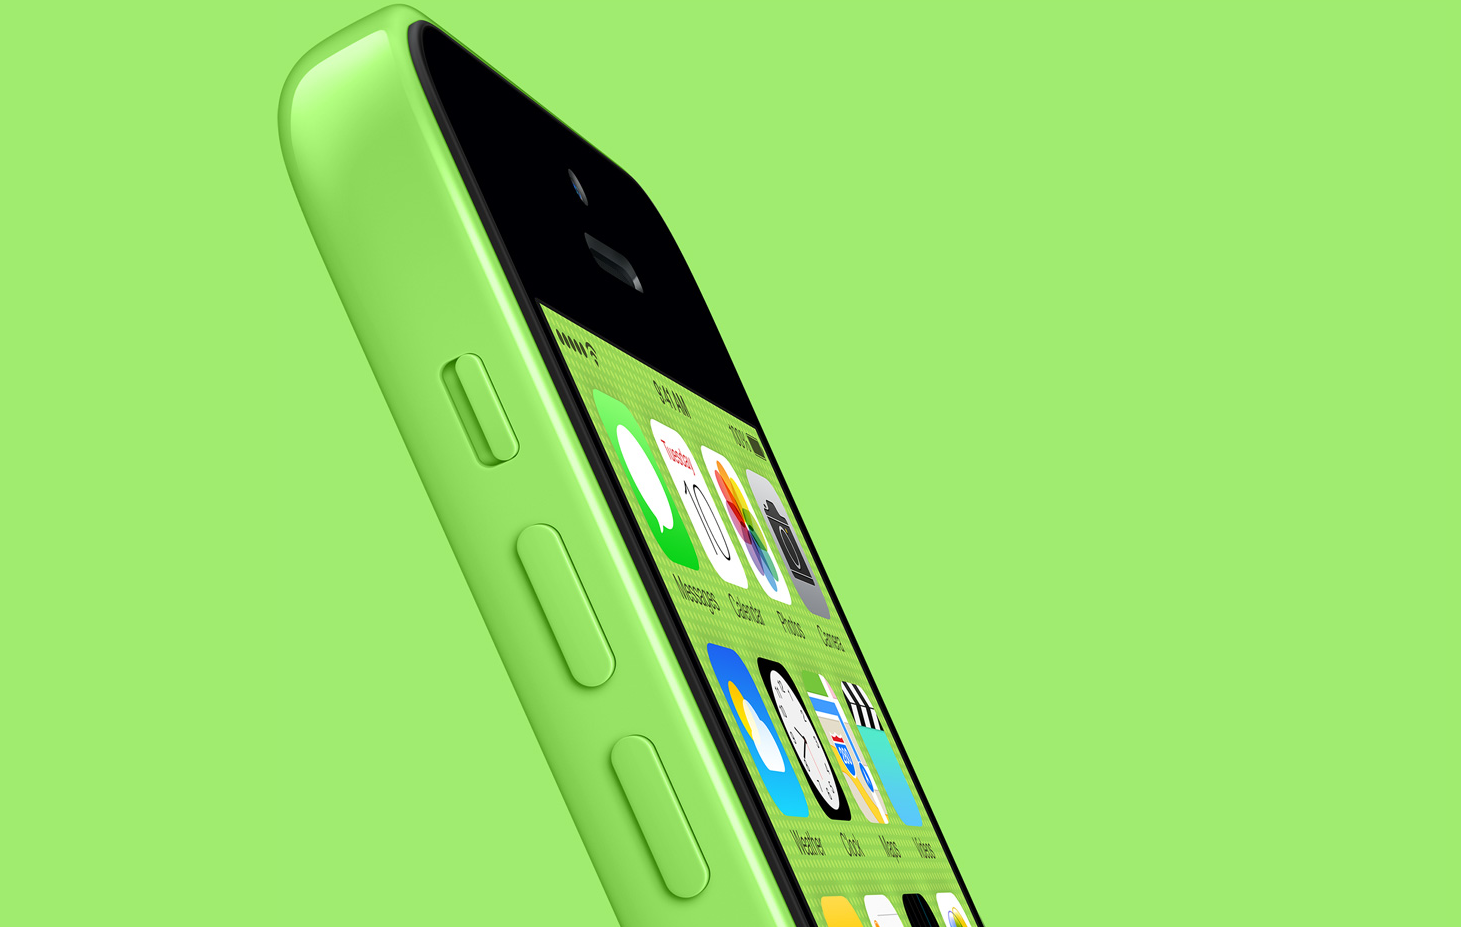 green iPhone 5c green background